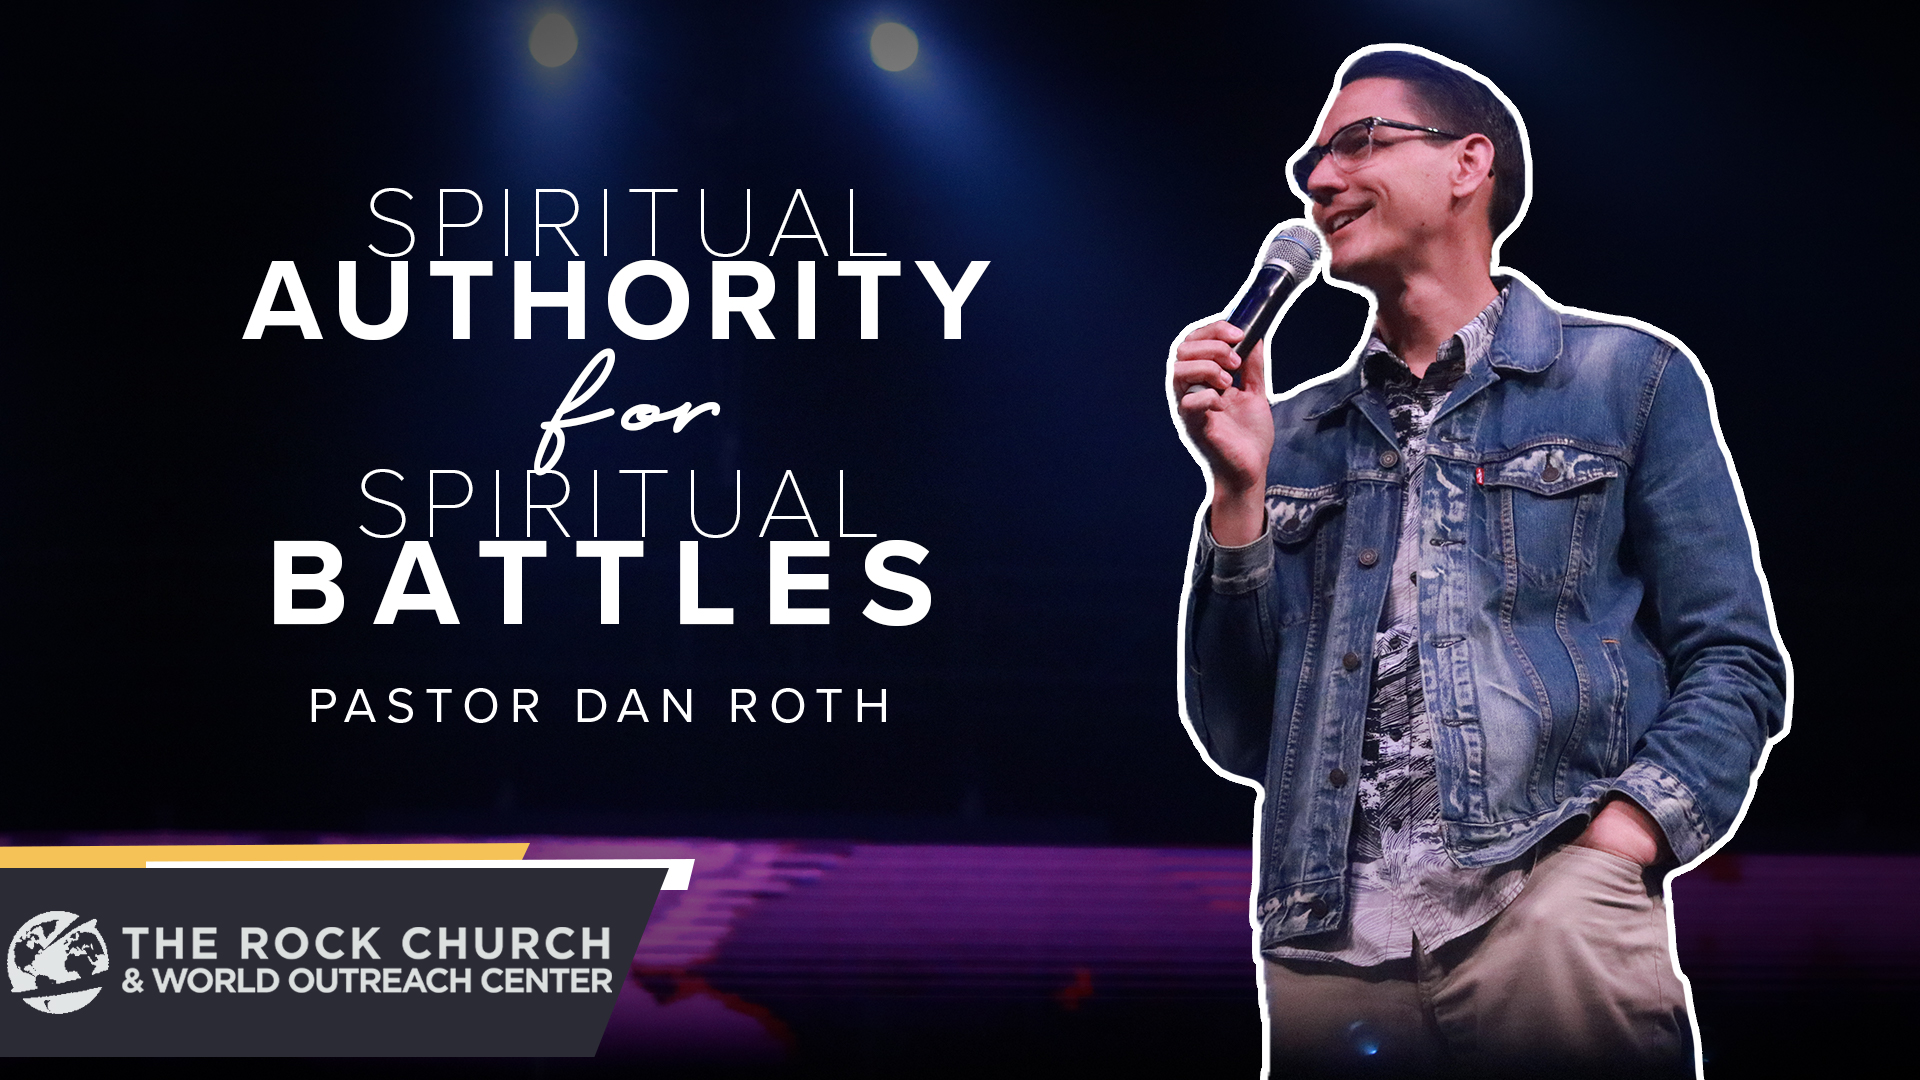 Watch Spiritual Authority For Spiritual Battles